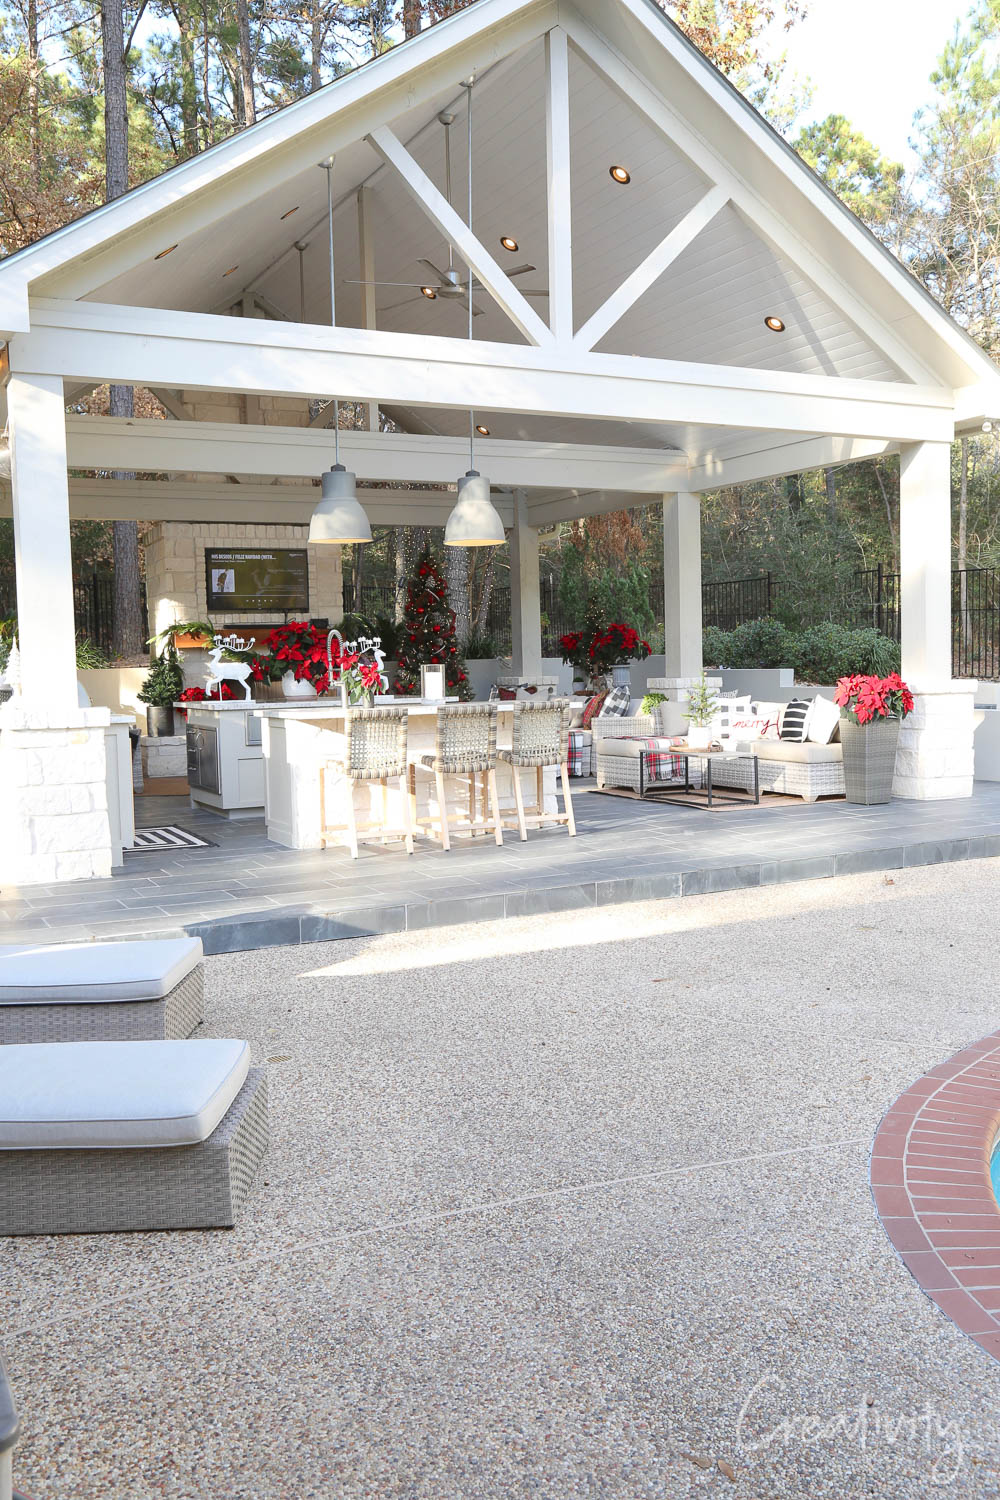 Outdoor Kitchen Decorated for Christmas